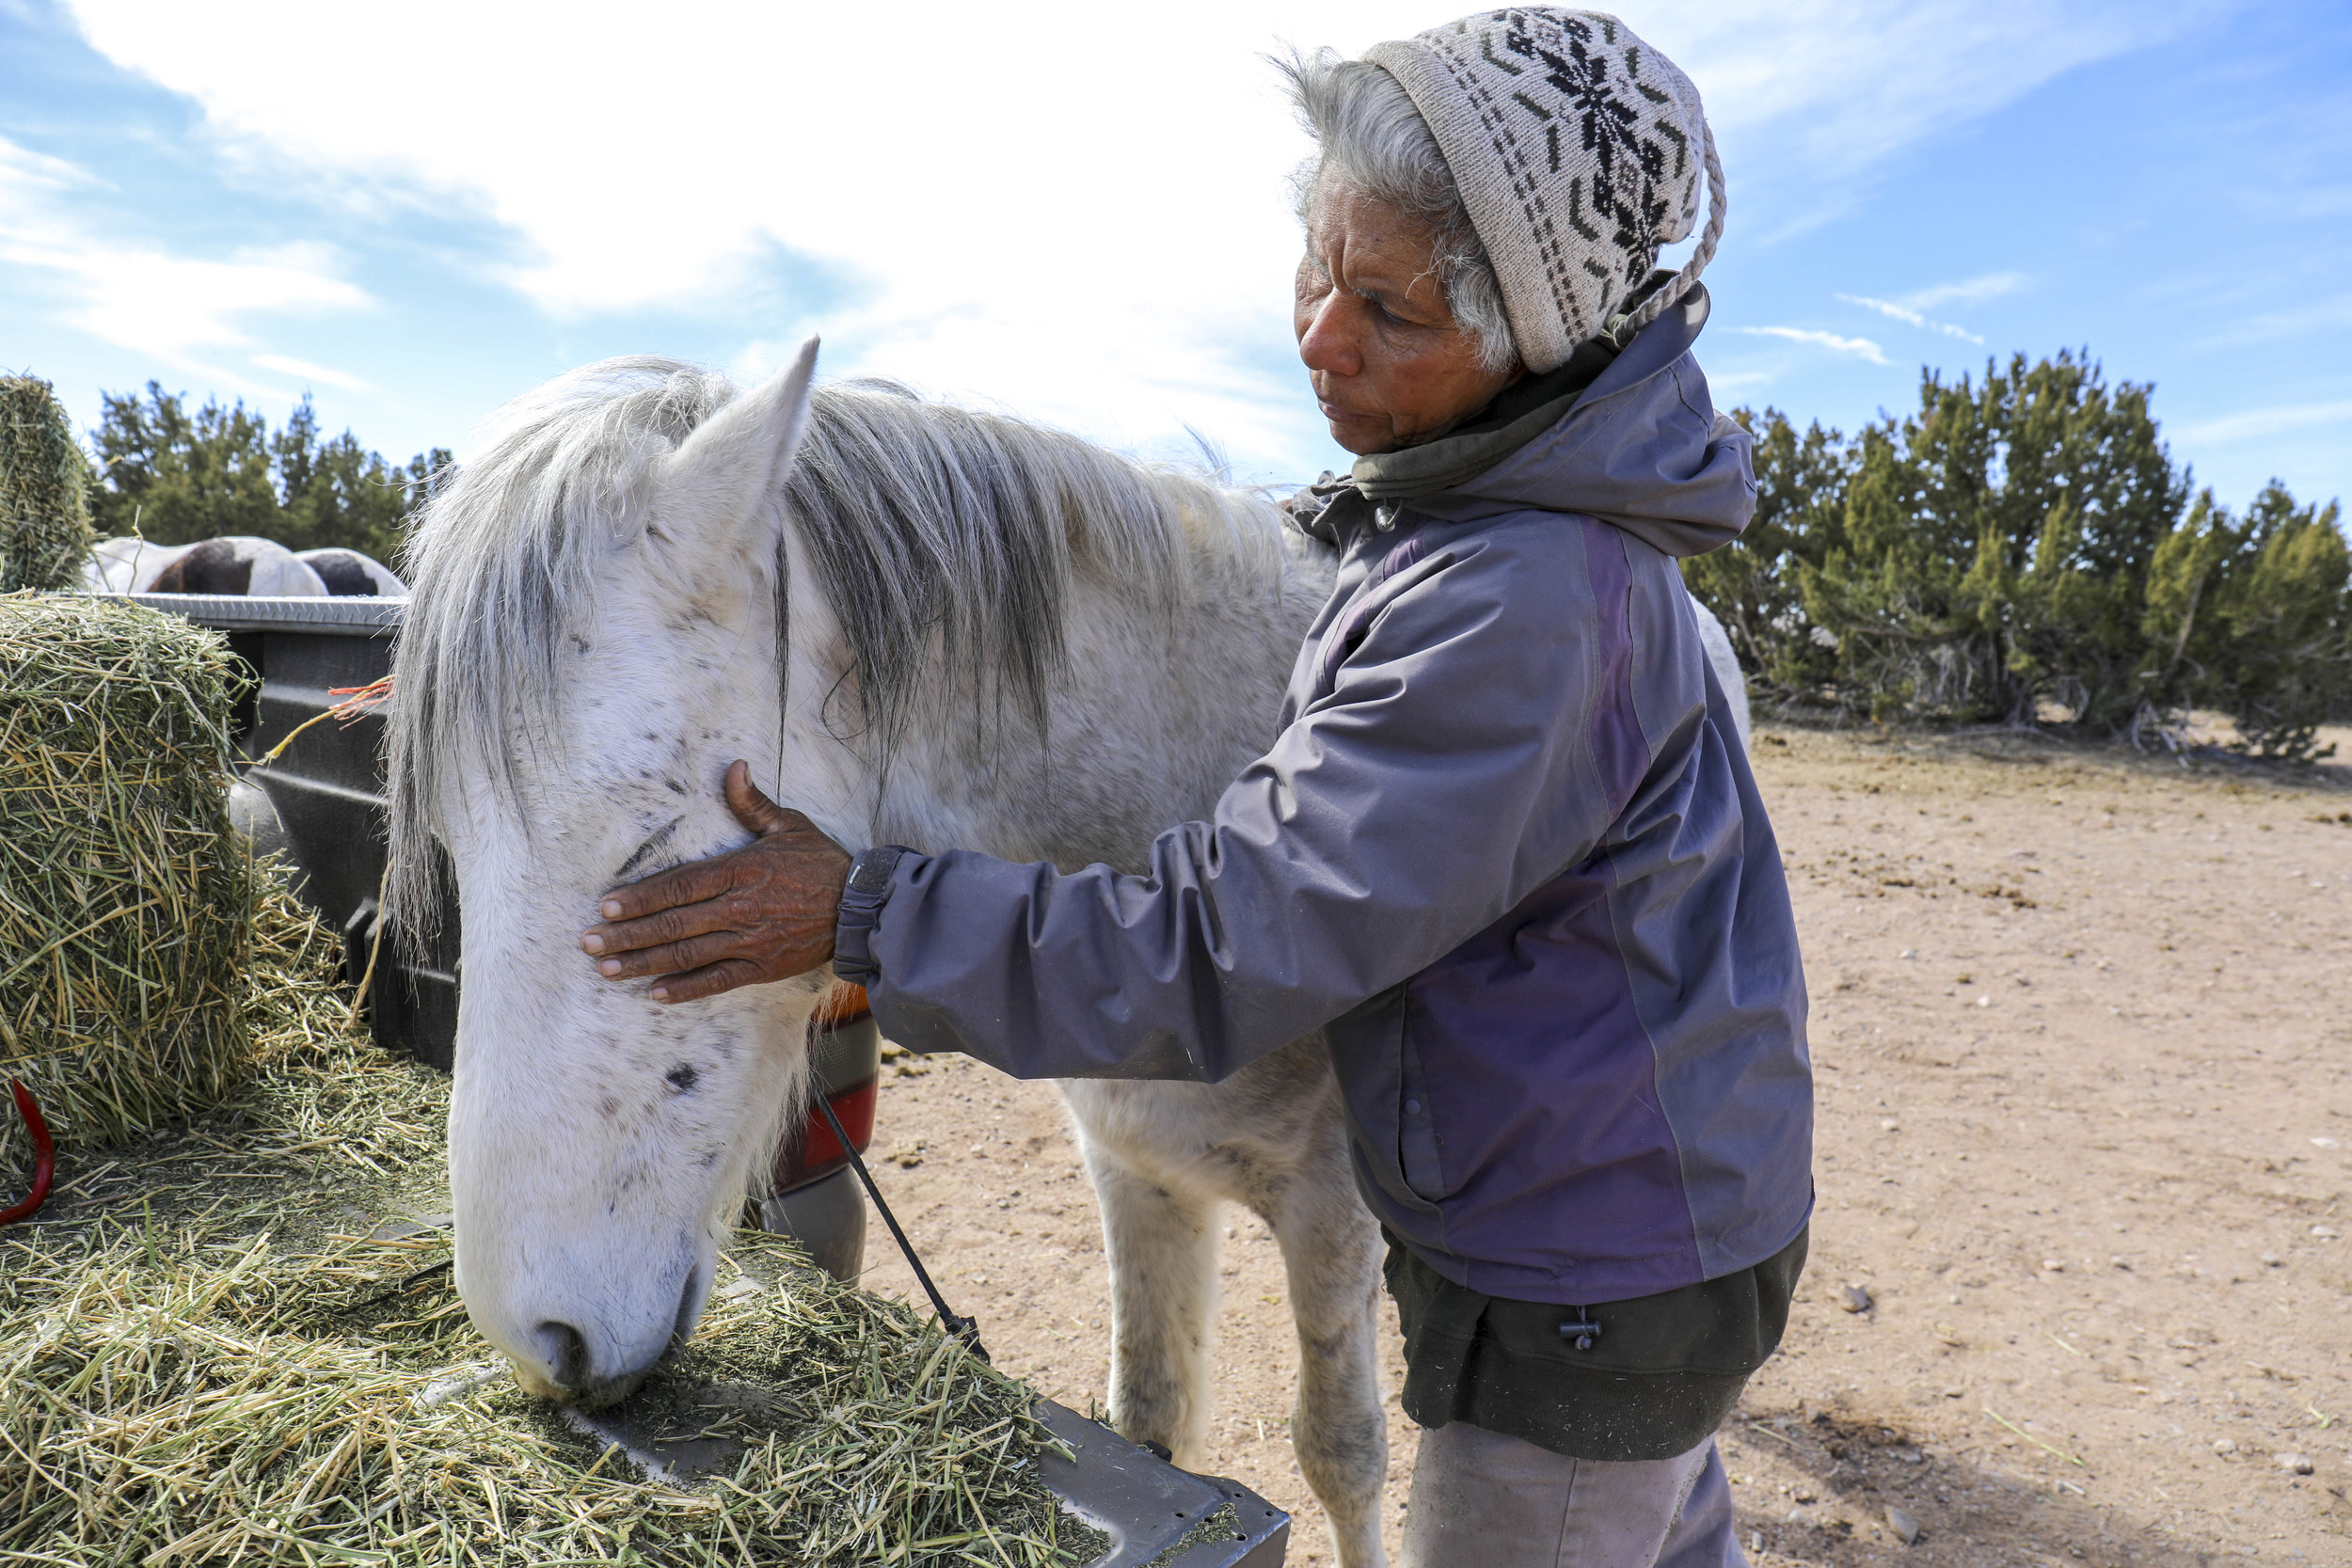 Adelina Sosa, a longtime volunteer for the nonprofit organization Placitas Wild, pets one of the free-roaming horses she cared for on a daily basis outside of Placitas, New Mexico, in February. A month later, Placitas Wild had to find new homes for all the horses that were living on a preserve in San Felipe Pueblo.   Photos by Diana Cervantes